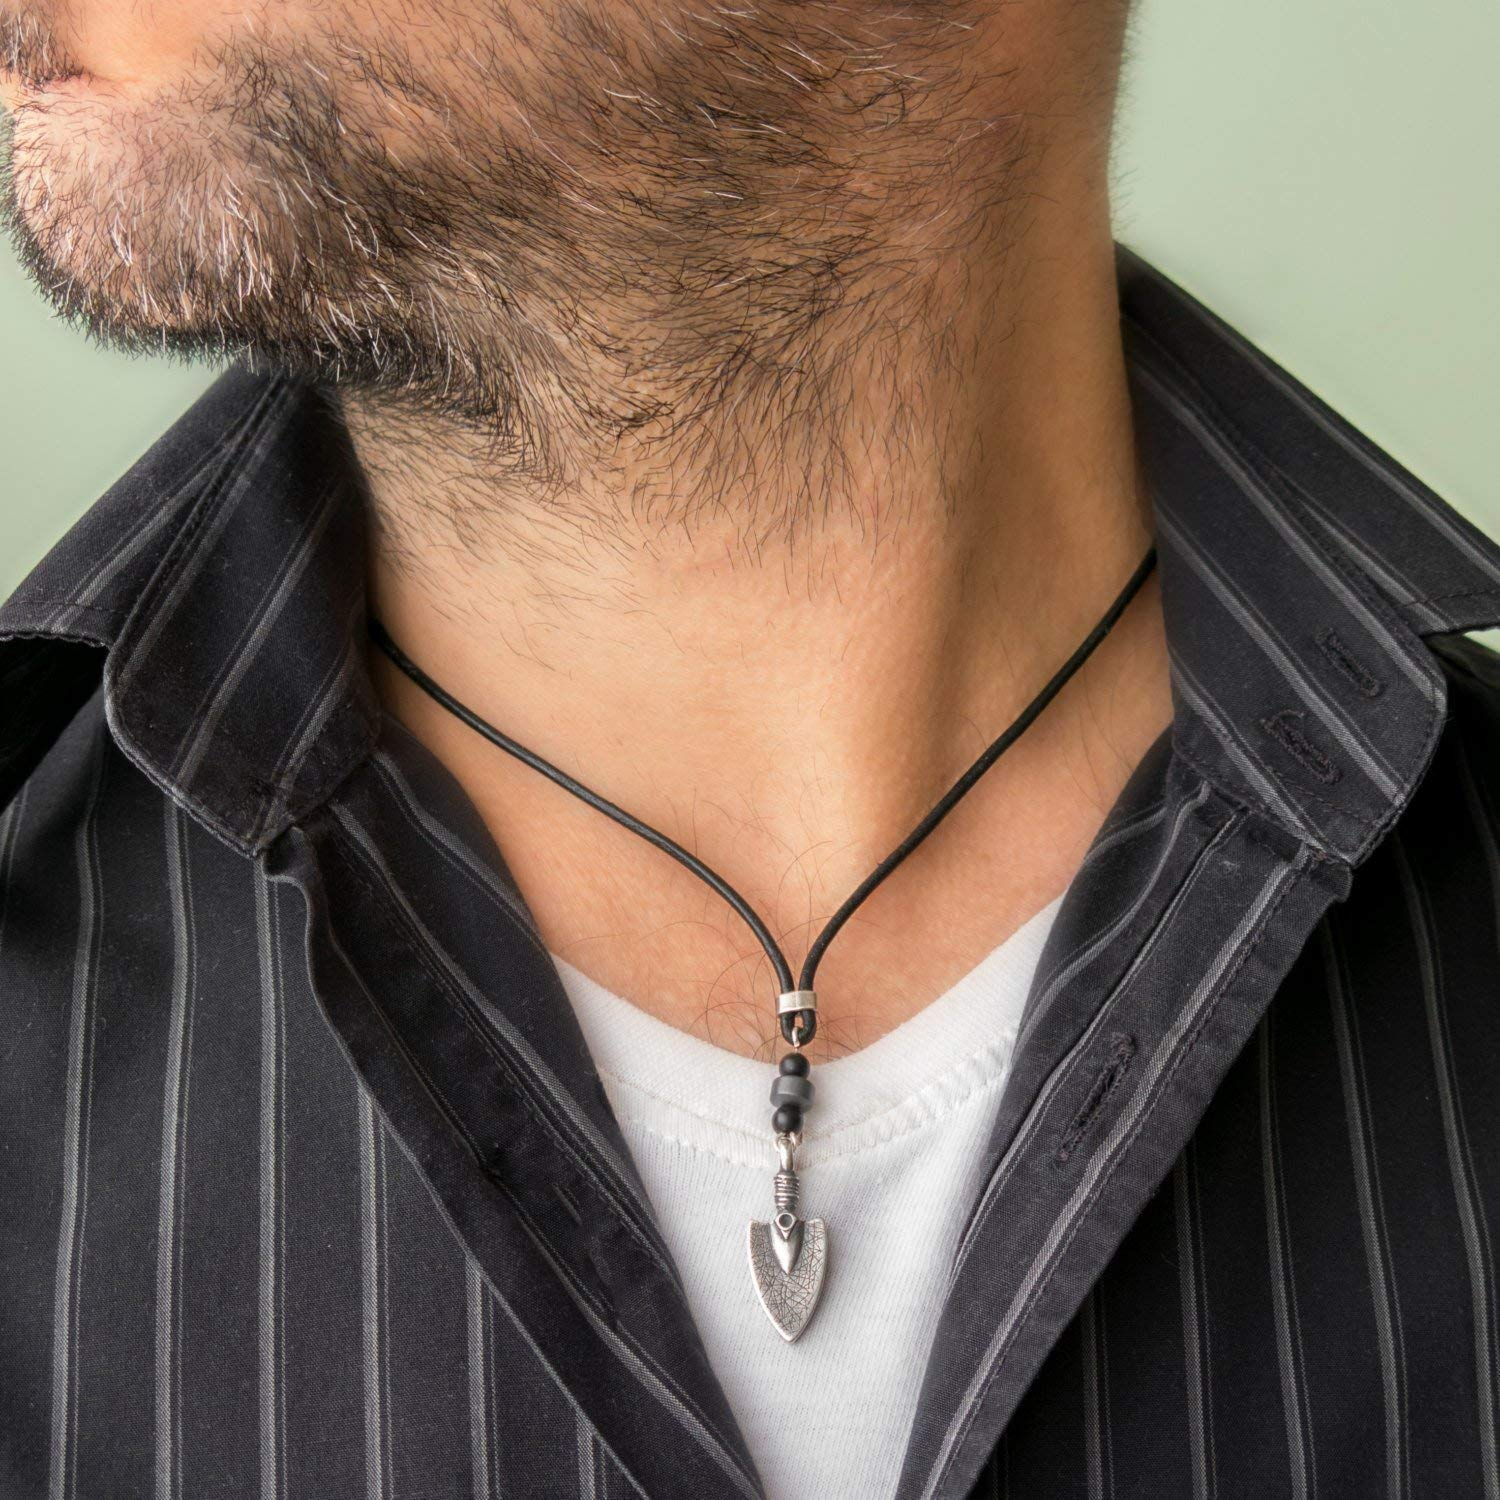 Men's Necklace - Men's Choker Necklace - Men's Leather Necklace - Men's Jewelry - Guys Jewelry - Guys Necklace - Necklaces For Men - Jewelry For Men - Male Jewelry - Male Necklace